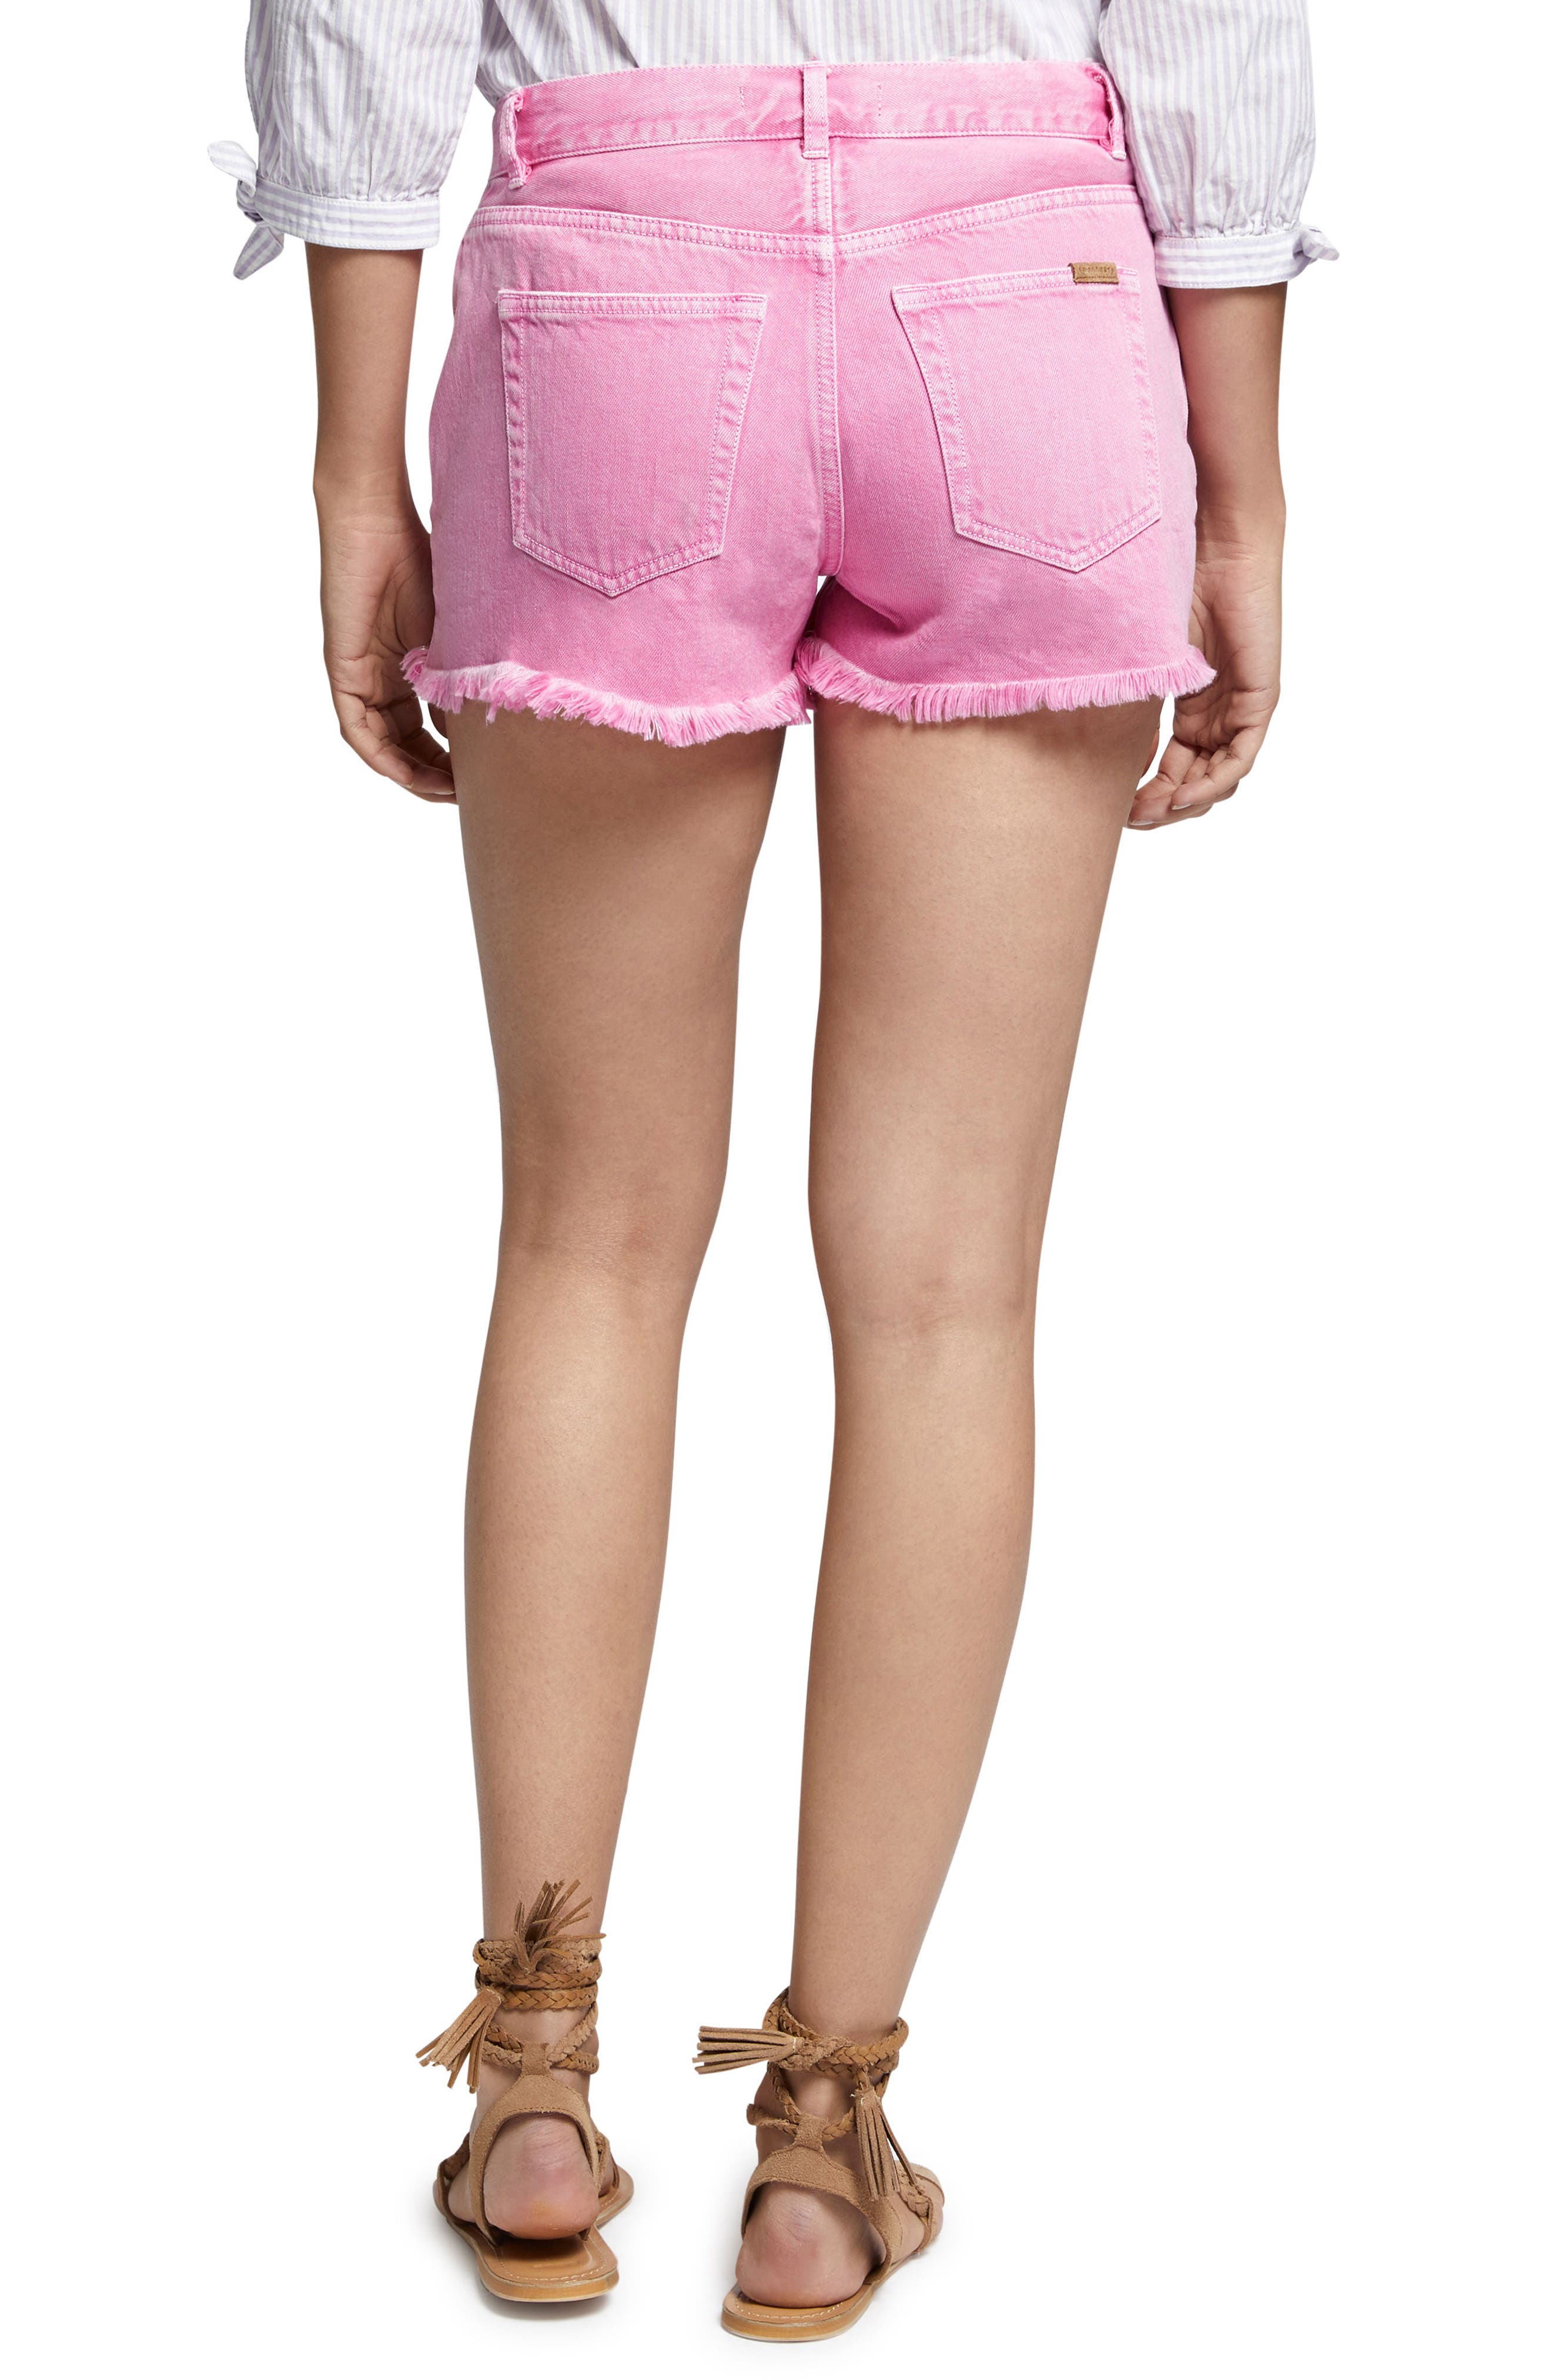 Wild Cherry Fringed Jean Shorts,                             Alternate thumbnail 2, color,                             650